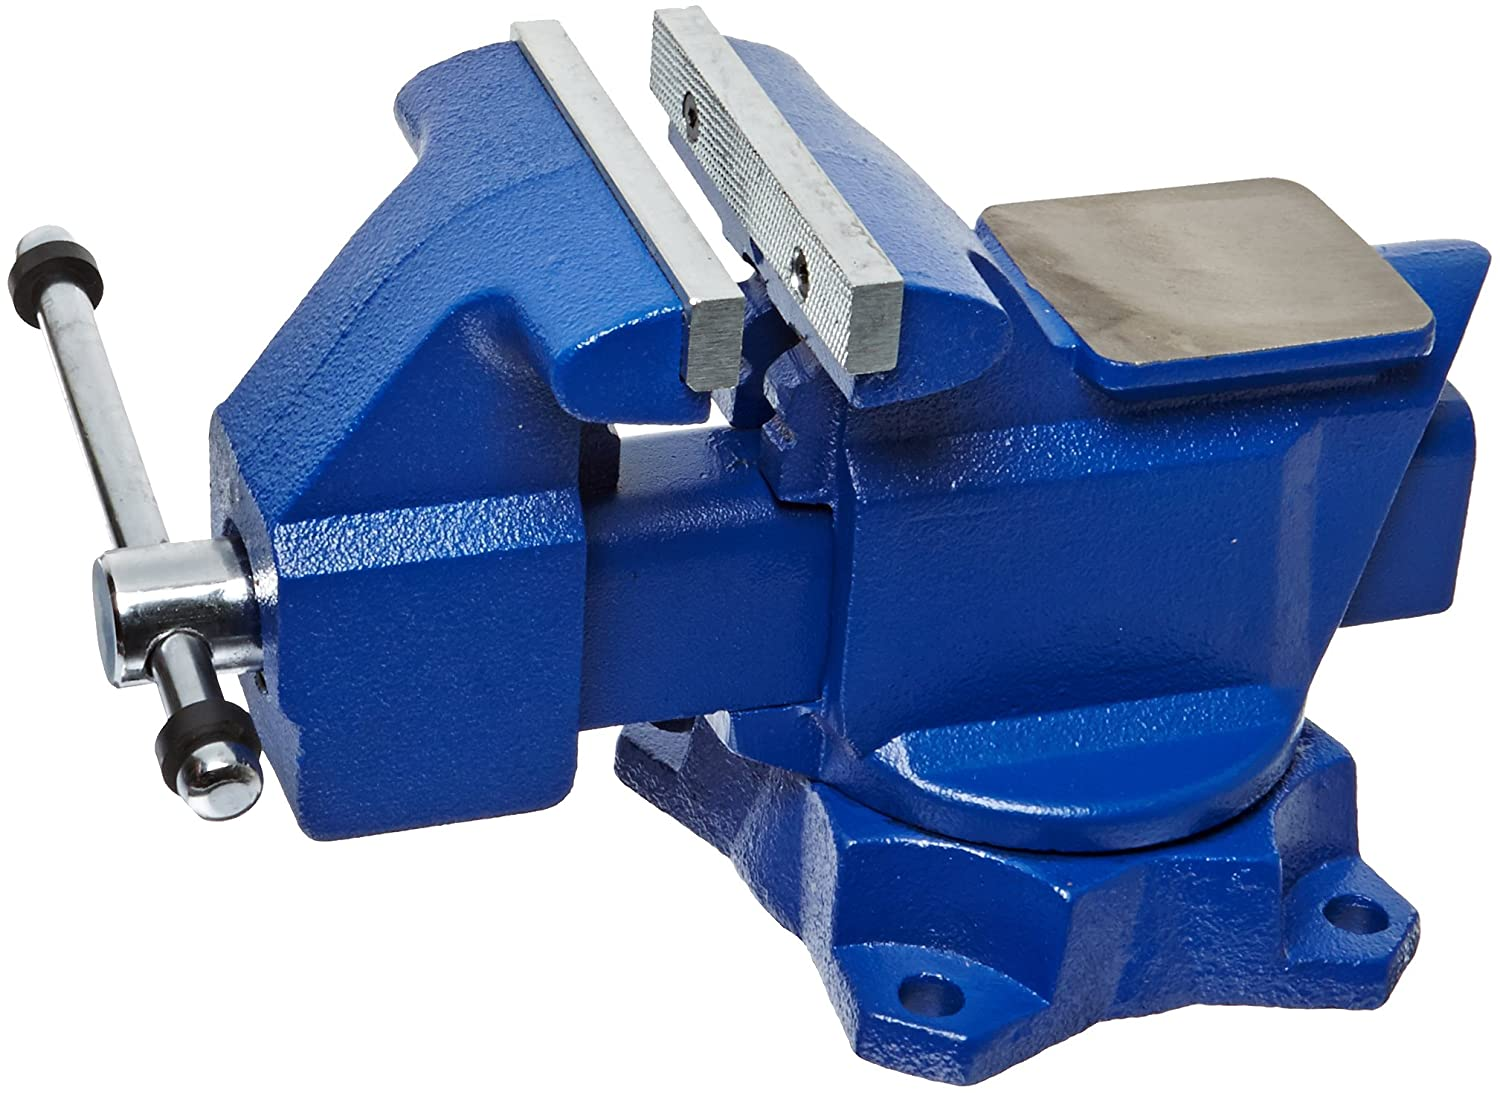 Top 10 best heavy duty bench vises buying guide 2016 2017 on flipboard 6 inch bench vise